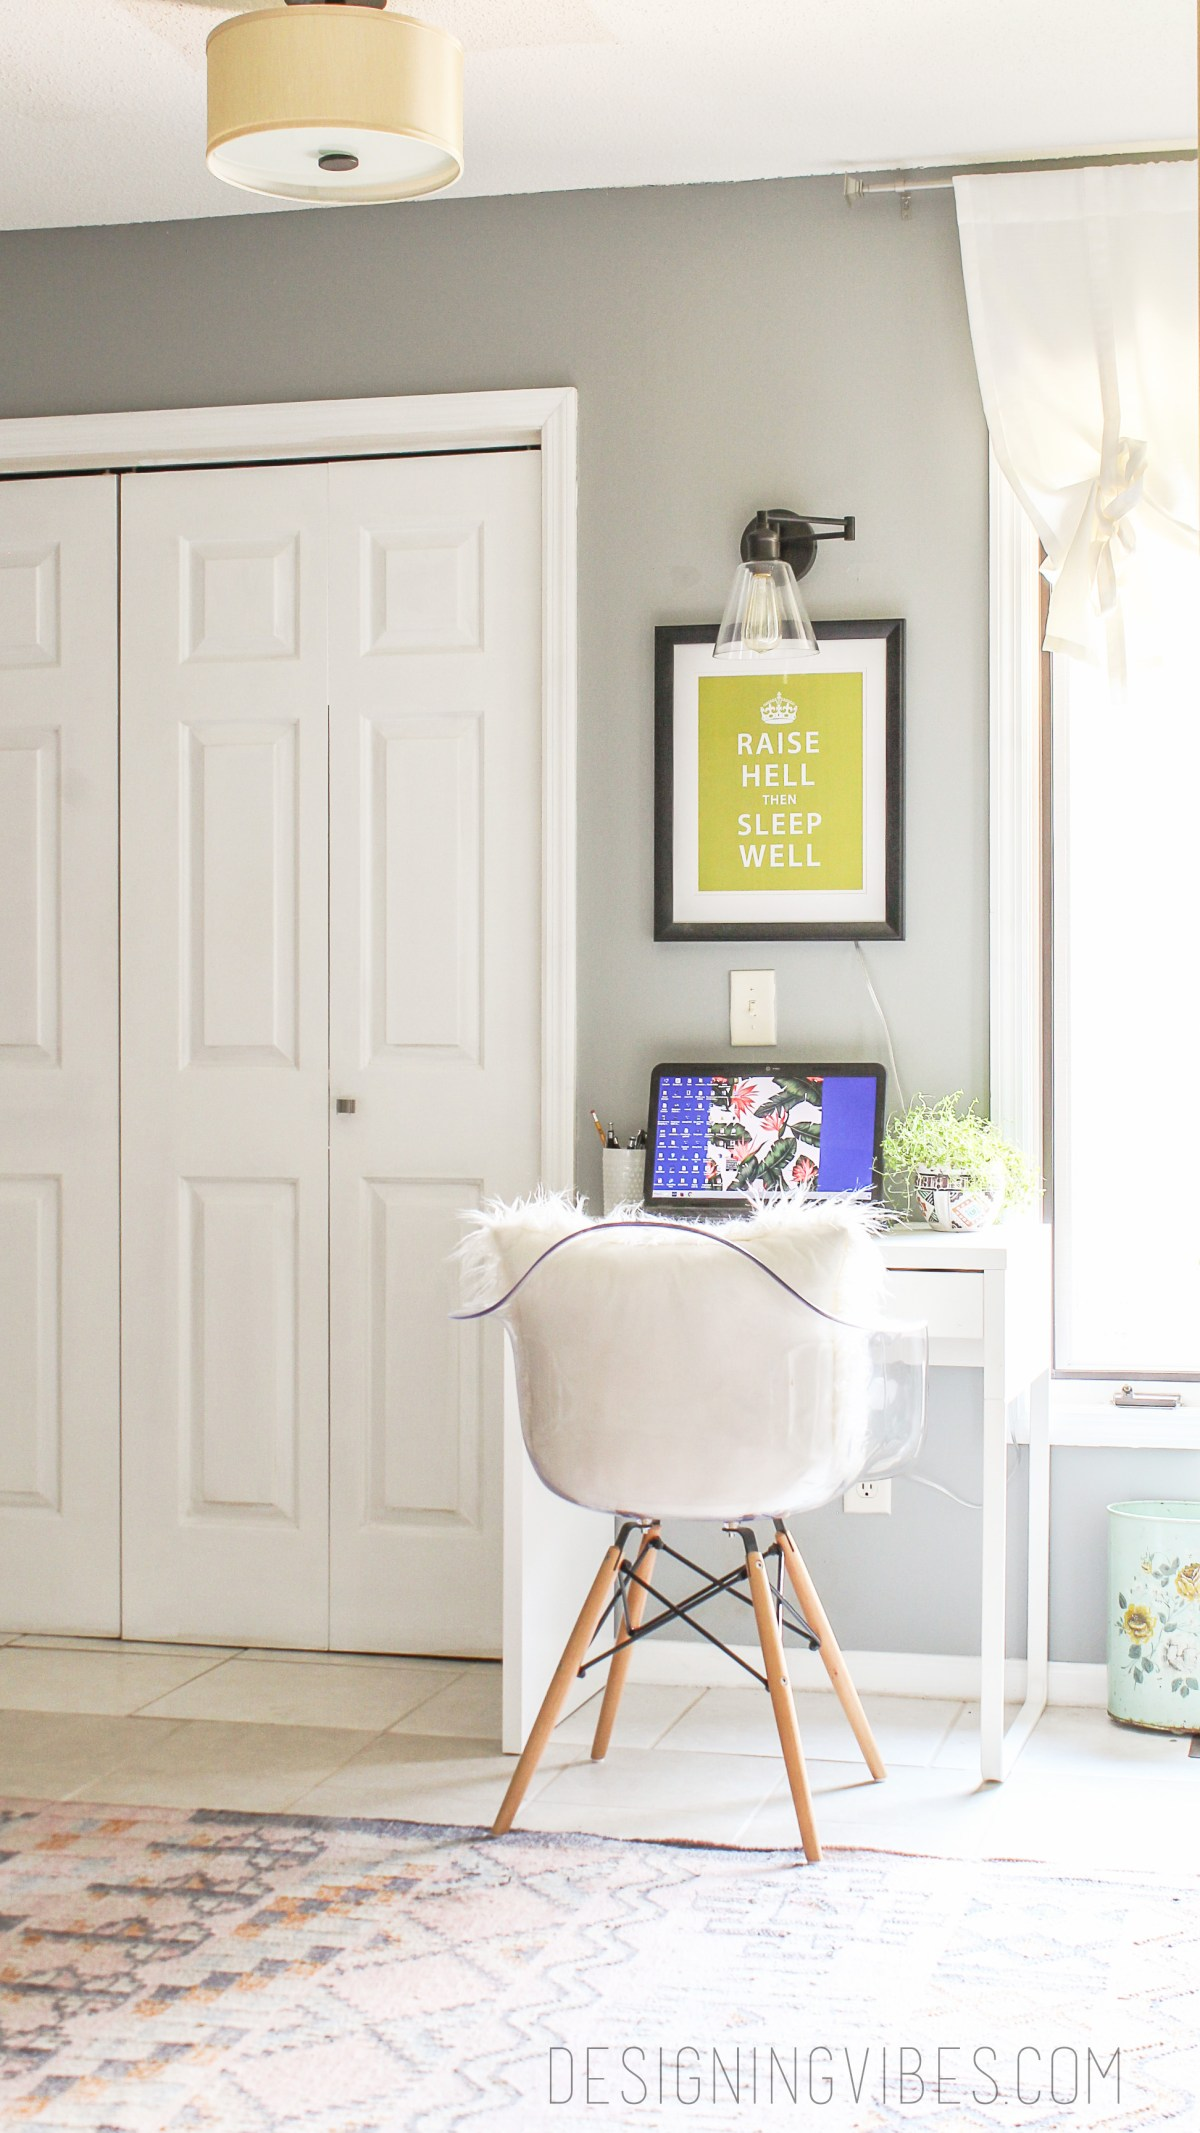 Custom Lighting On A Budget How To No Wiring Wall Sconces Without An Electrician